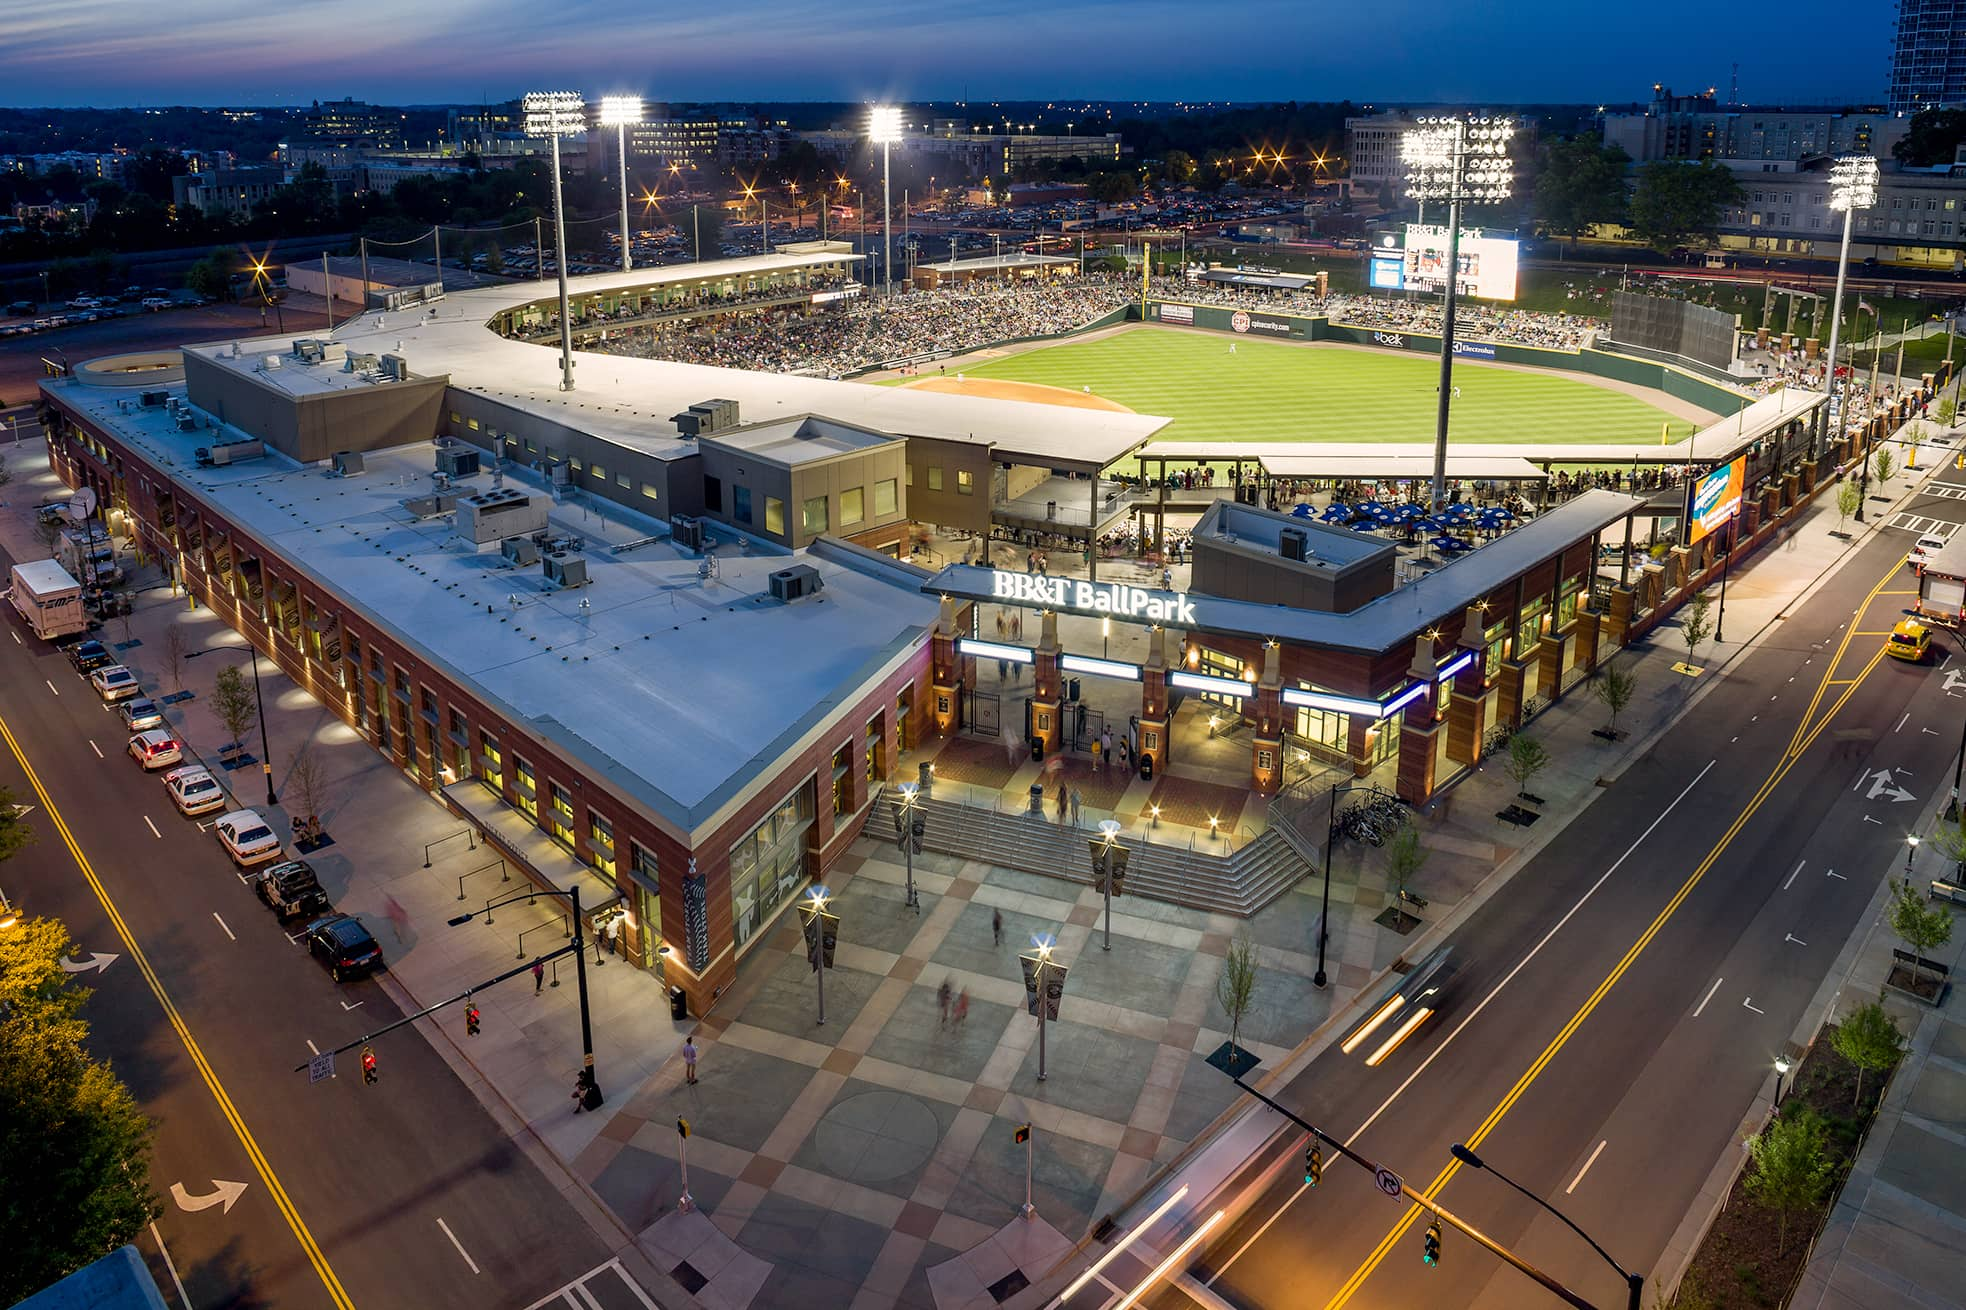 Kimley-Horn performed landscape architecture, streetscape, and urban corridor design for BB&T Ballpark, home of the Charlotte Knights AAA baseball team.